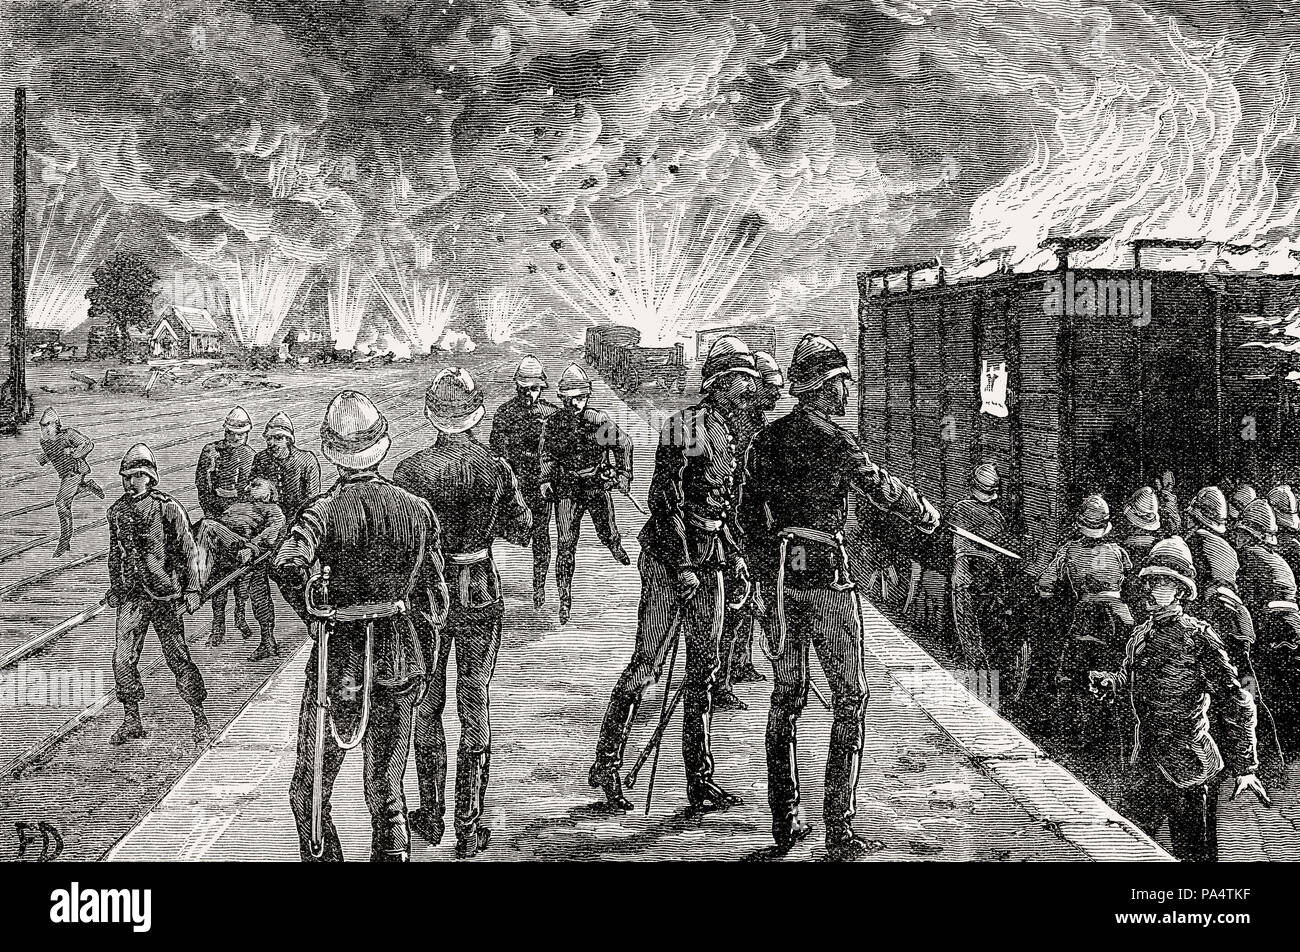 Explosion at Cairo Railway Station, British invasion in 1882, From British Battles on Land and Sea, by James Grant - Stock Image